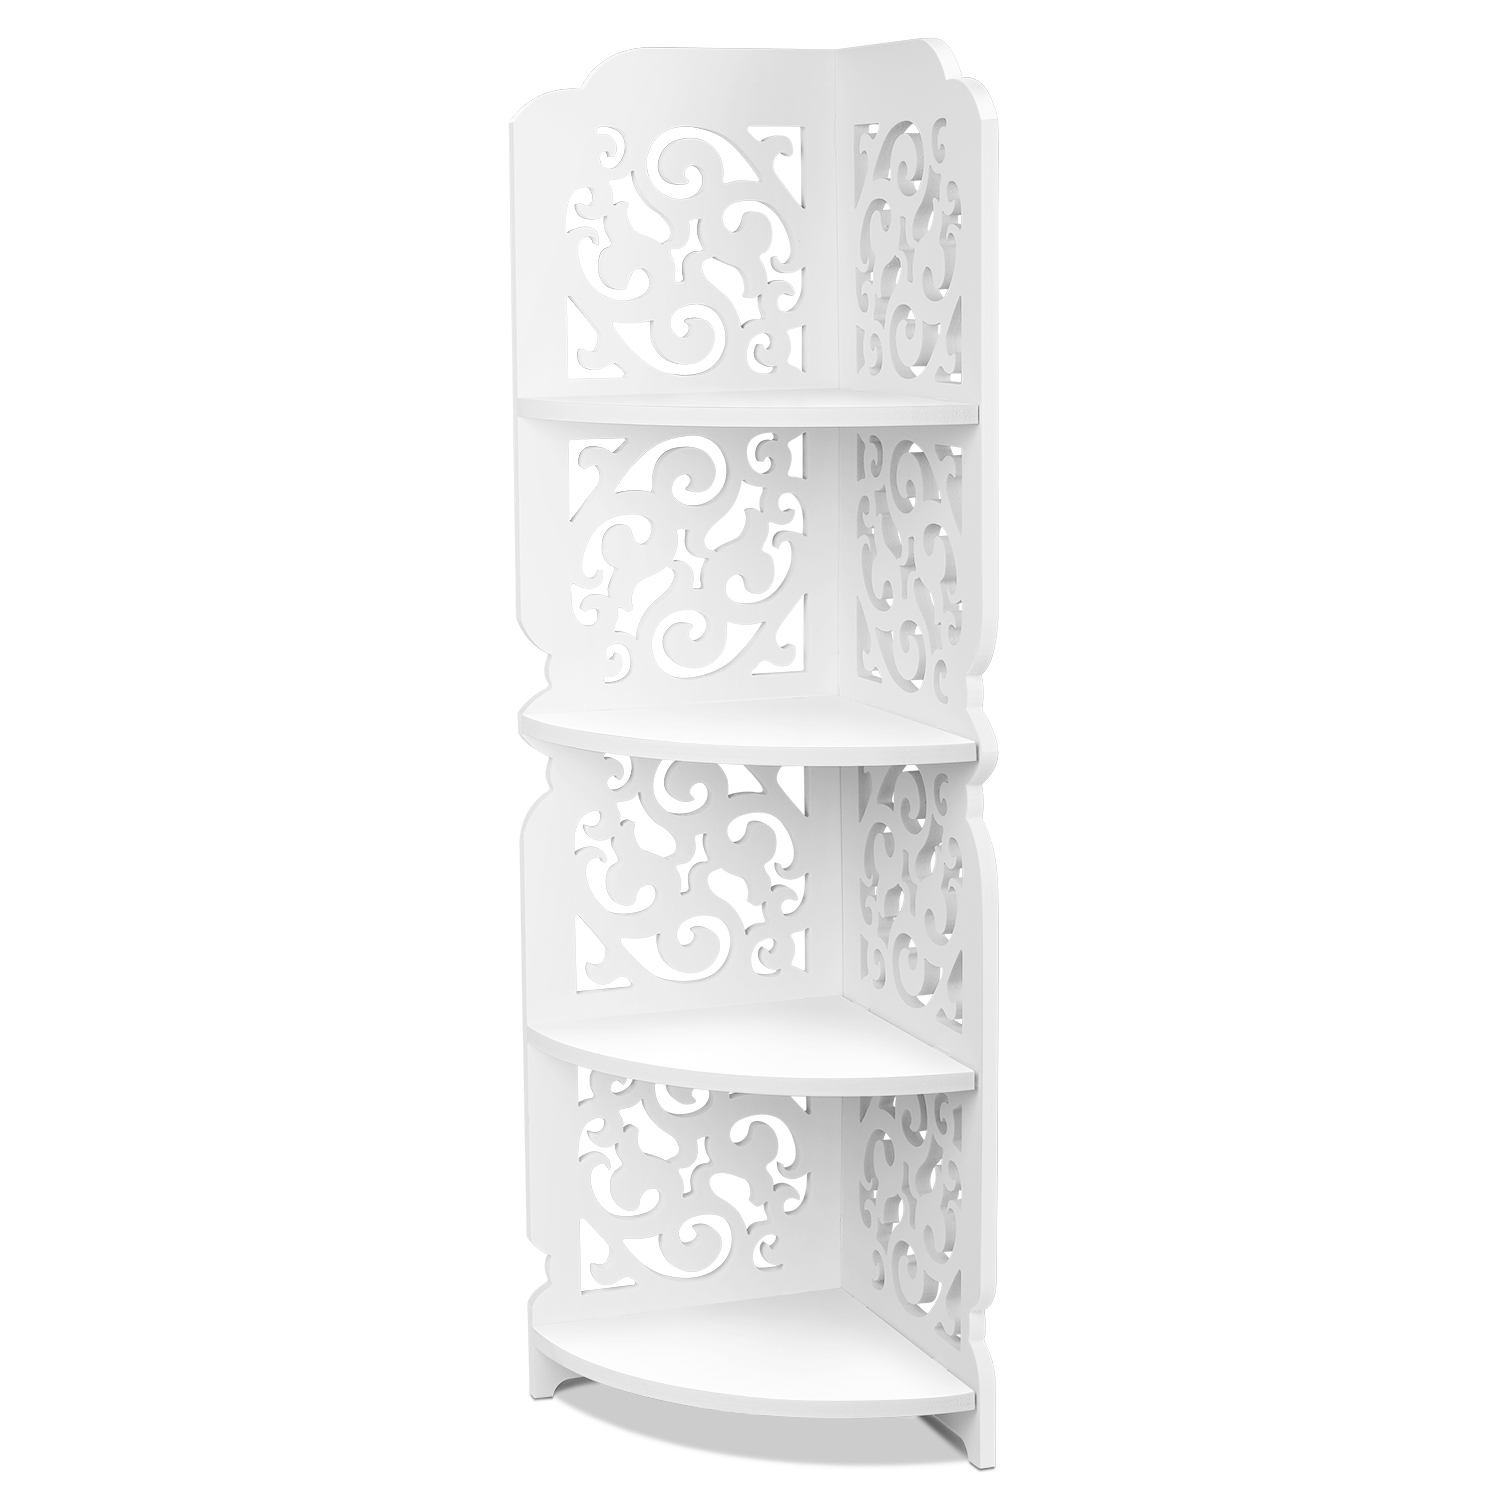 NEW 3TIER WHITE WOODEN CORNER SHELF UNIT KITCHEN GIRLS ROOM BATHROOM SHELF UNIT